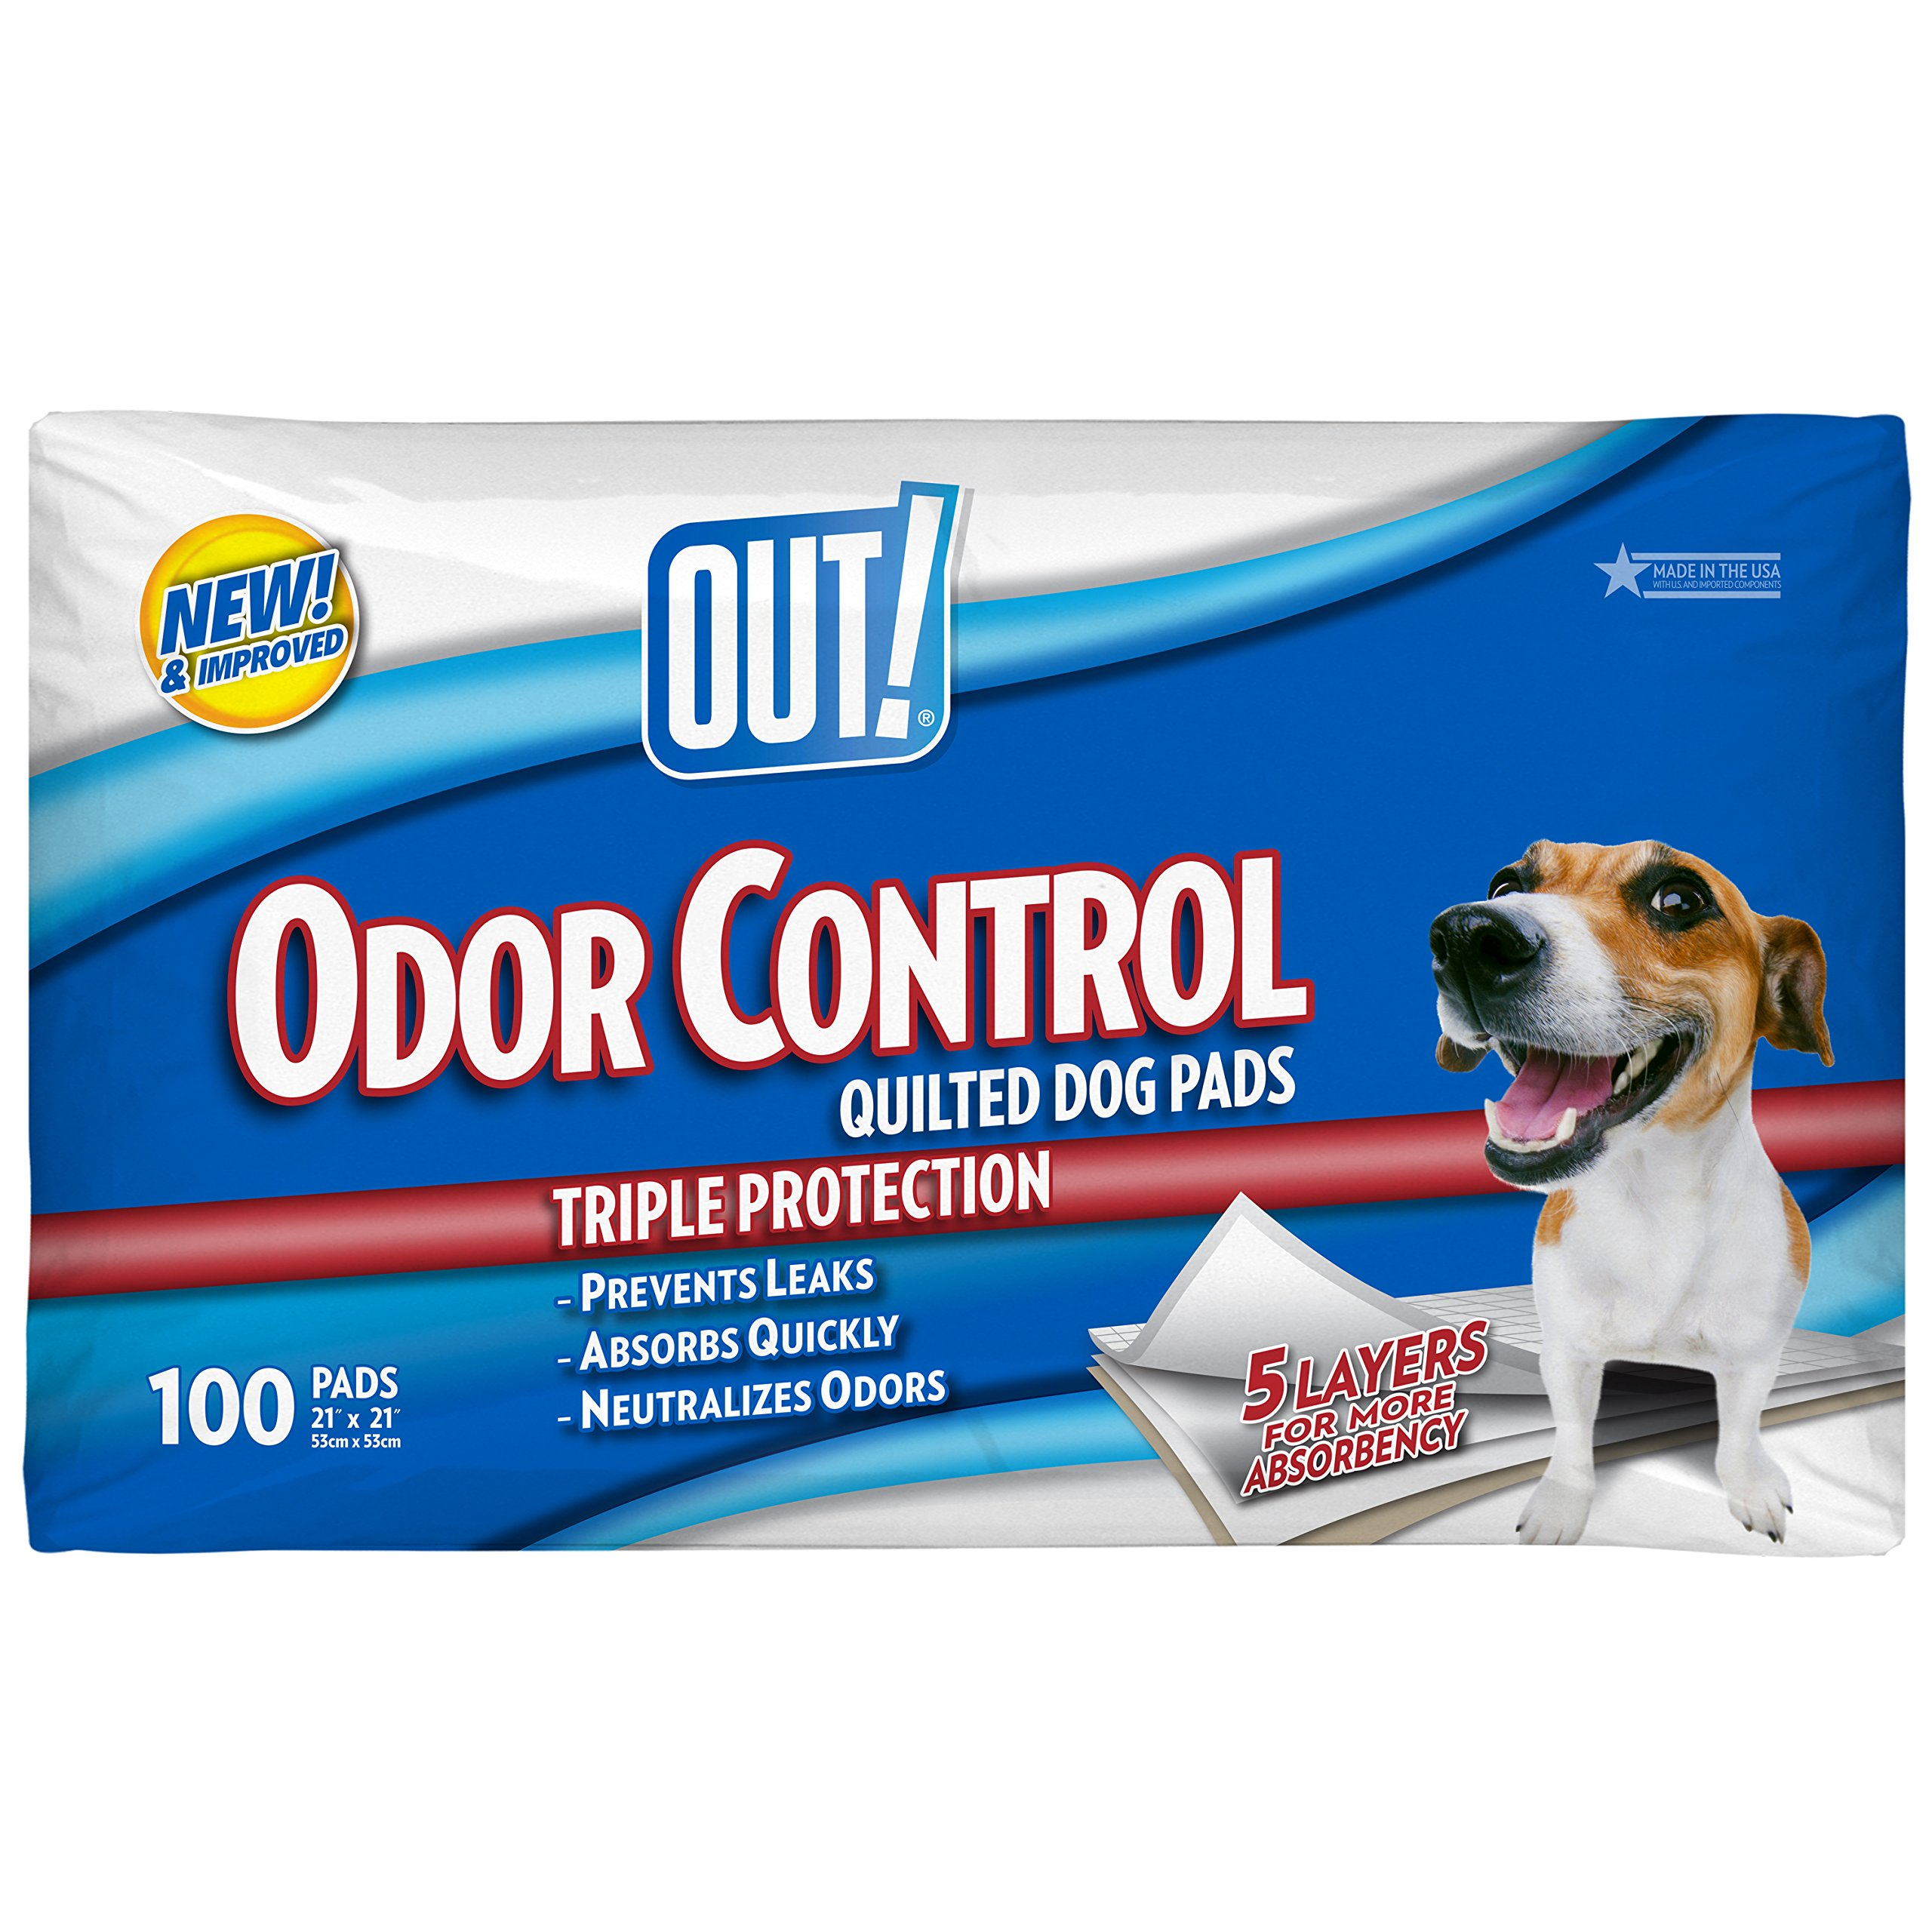 OUT! 5 Layer Odor Control Quilted Dog Pads, 21 x 21 inches, Multiple Counts